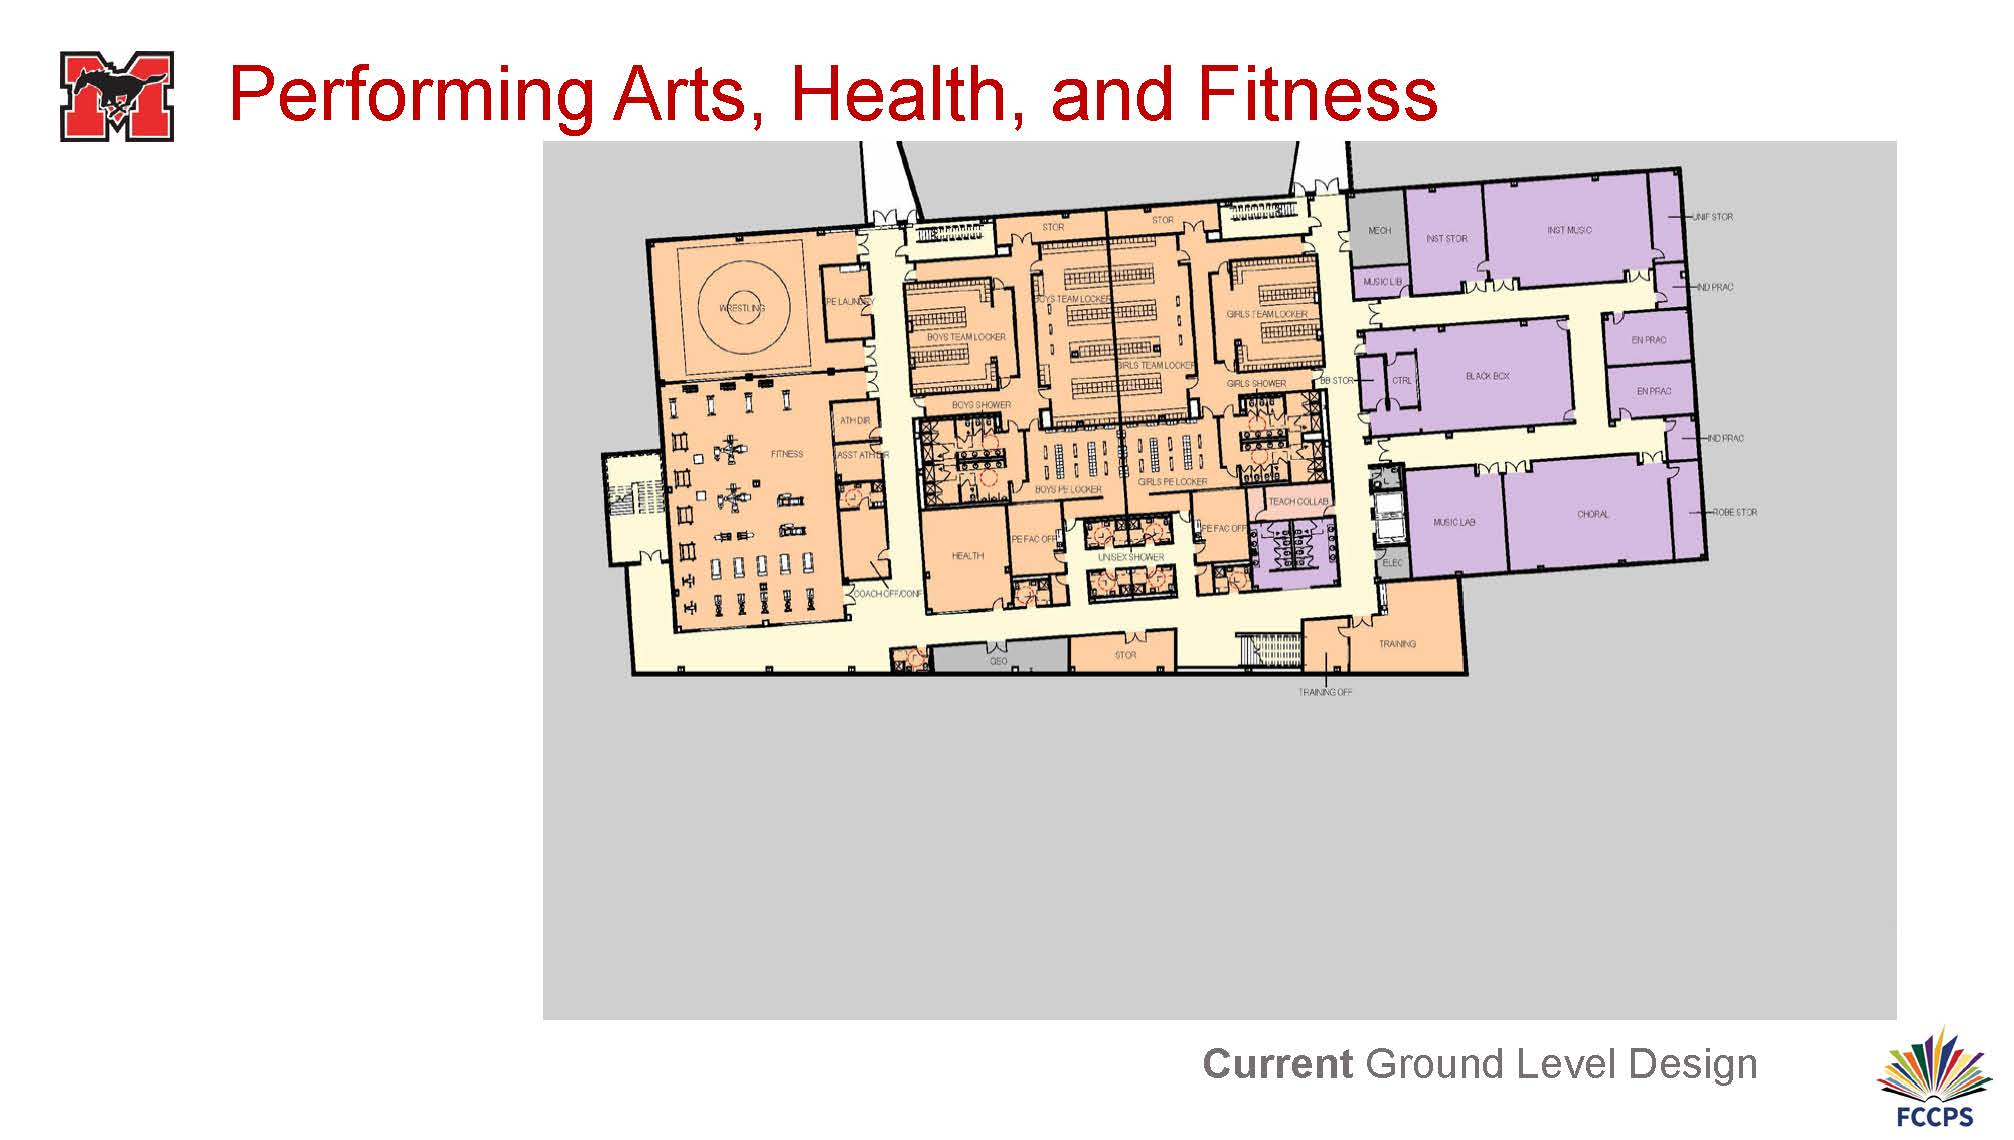 Performing Arts, Health, and Fitness